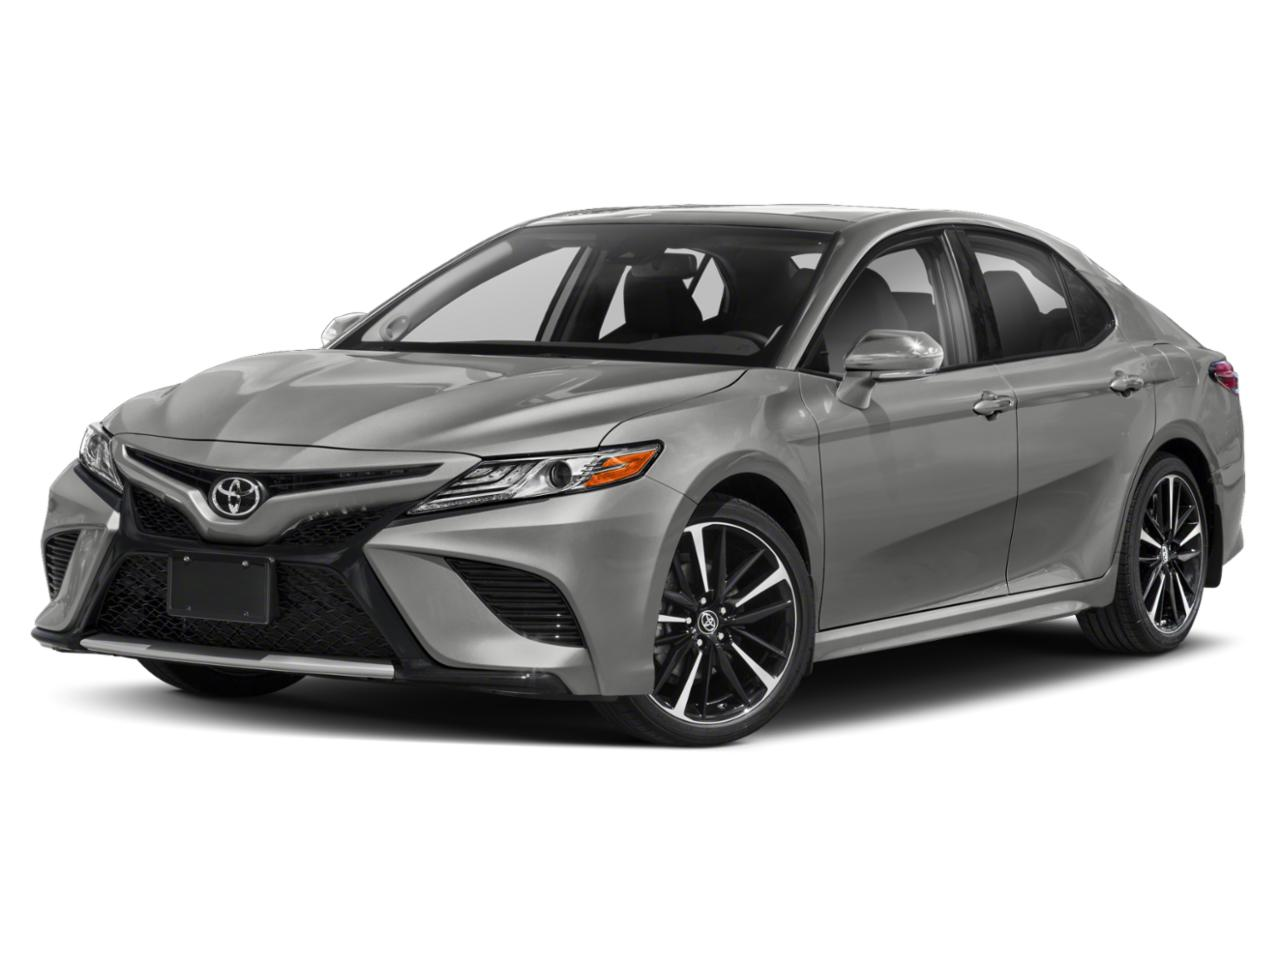 2020 Toyota Camry Vehicle Photo in Grapevine, TX 76051